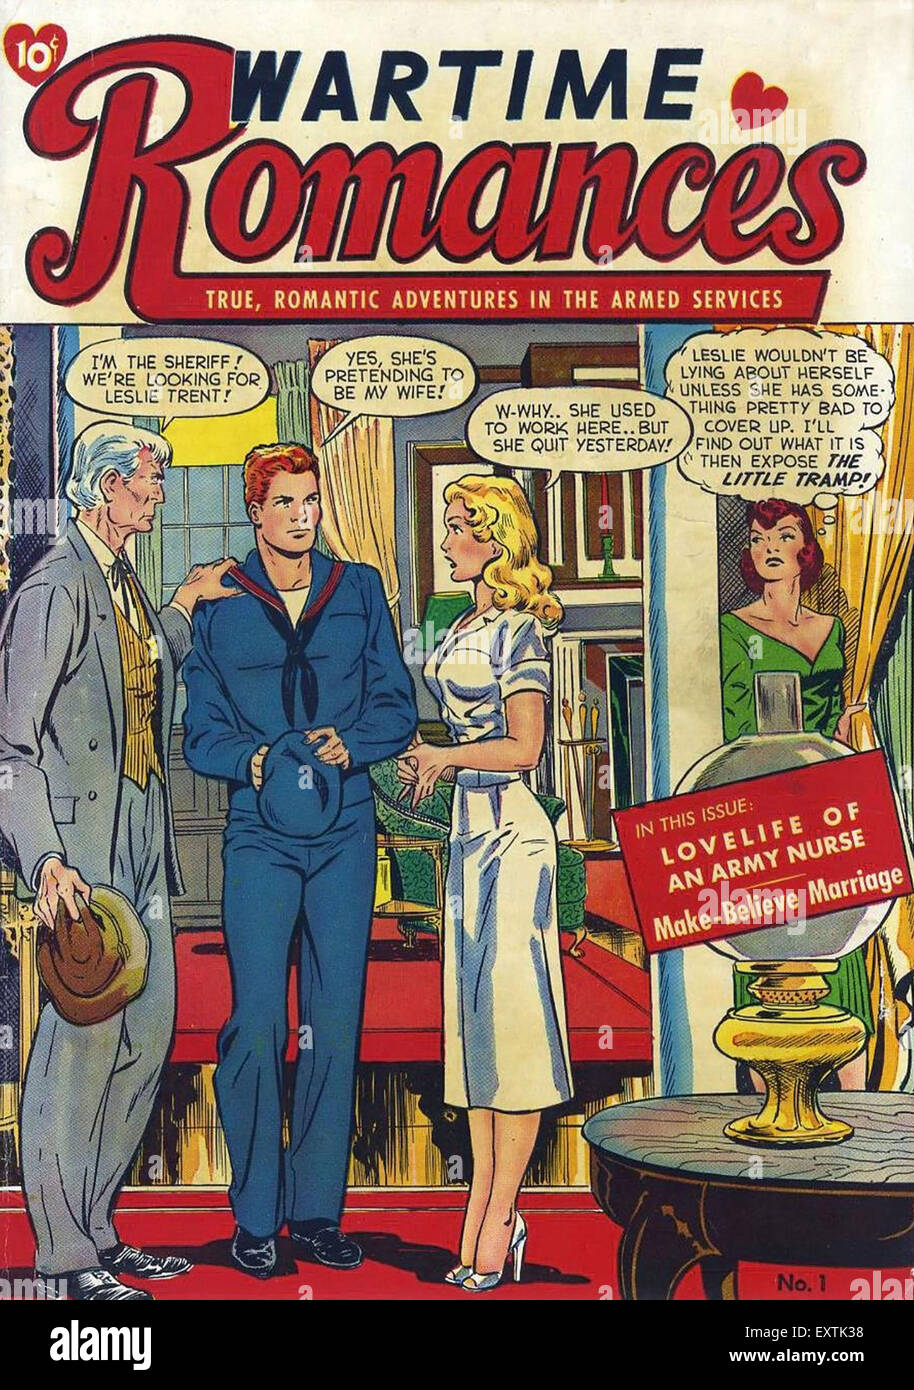 USA Wartime Romance Comic/ Annual Cover - Stock Image